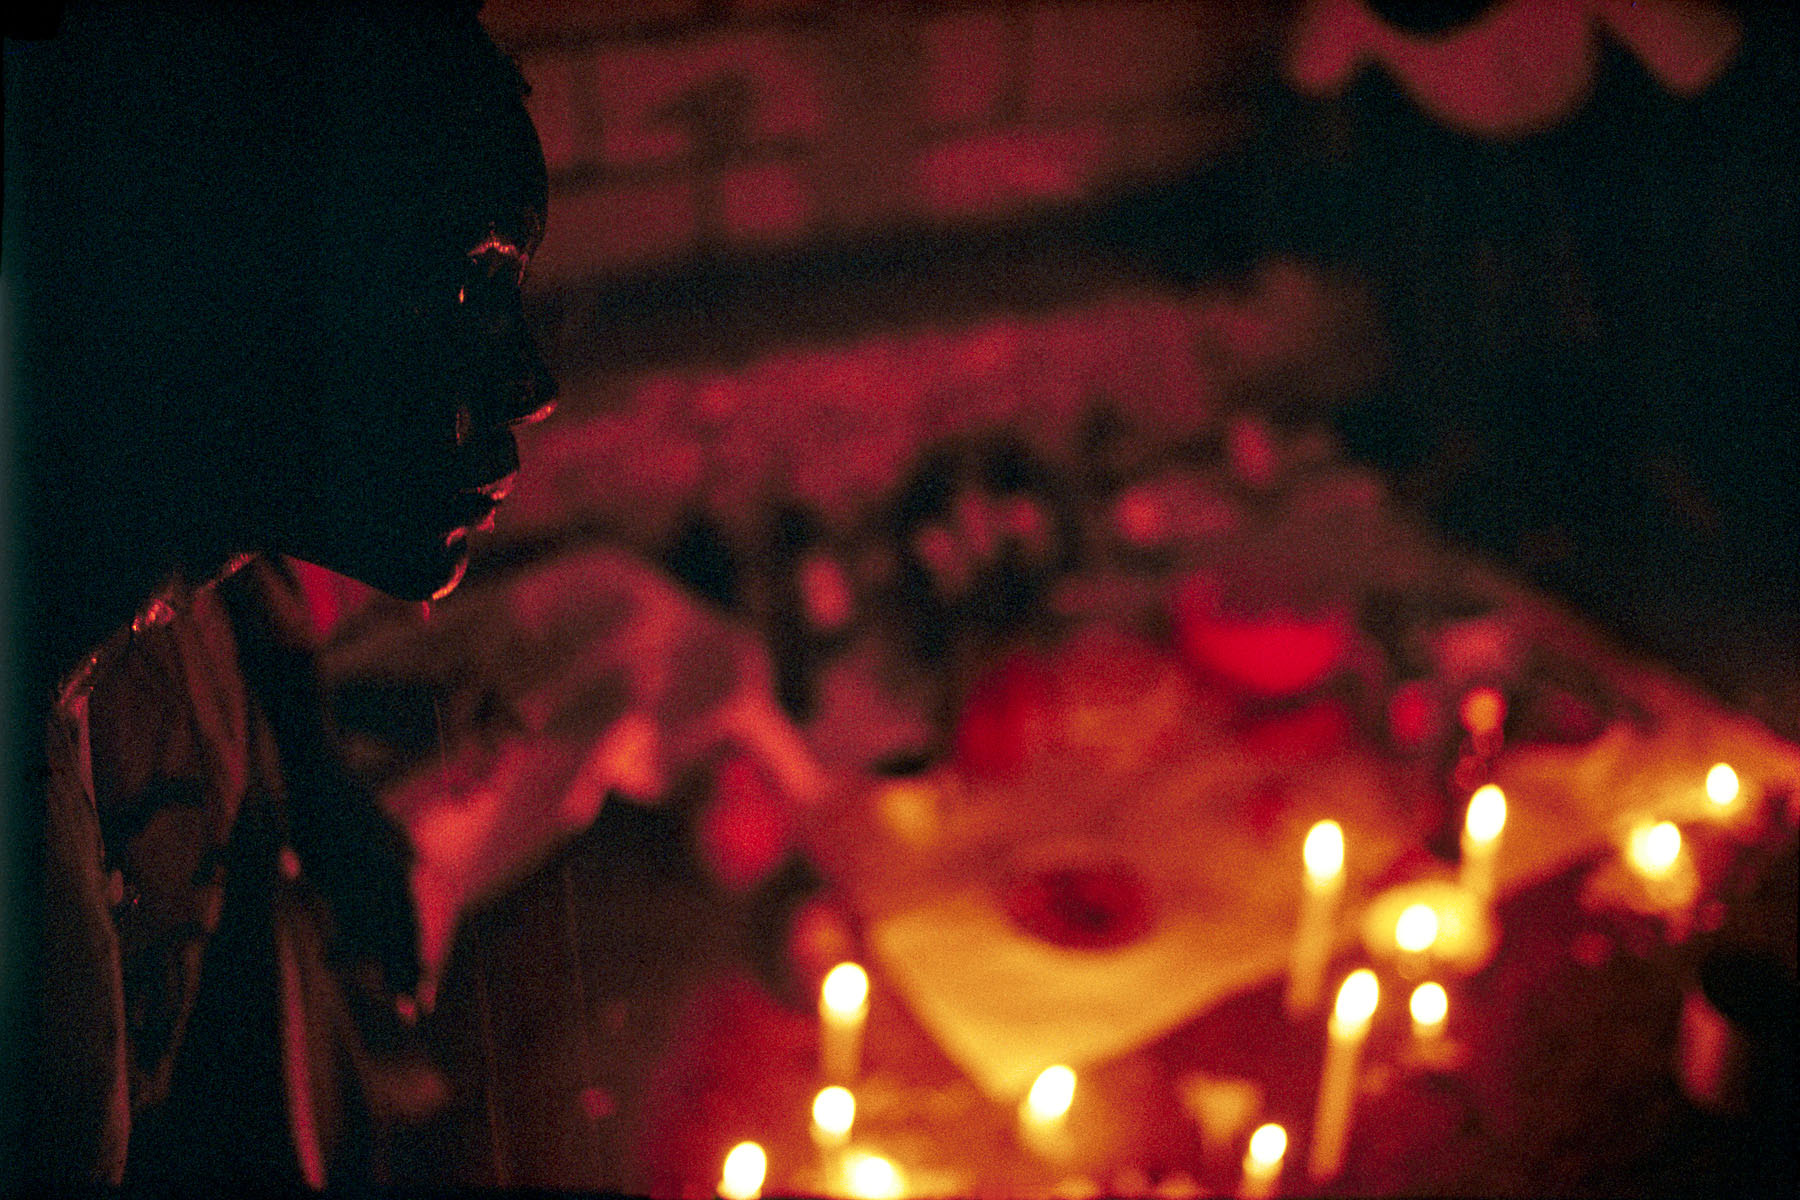 On Twelfth Night a believer is being looked after in front of the altar consecrated to the loas (spirits) protectors of the community in January 1997